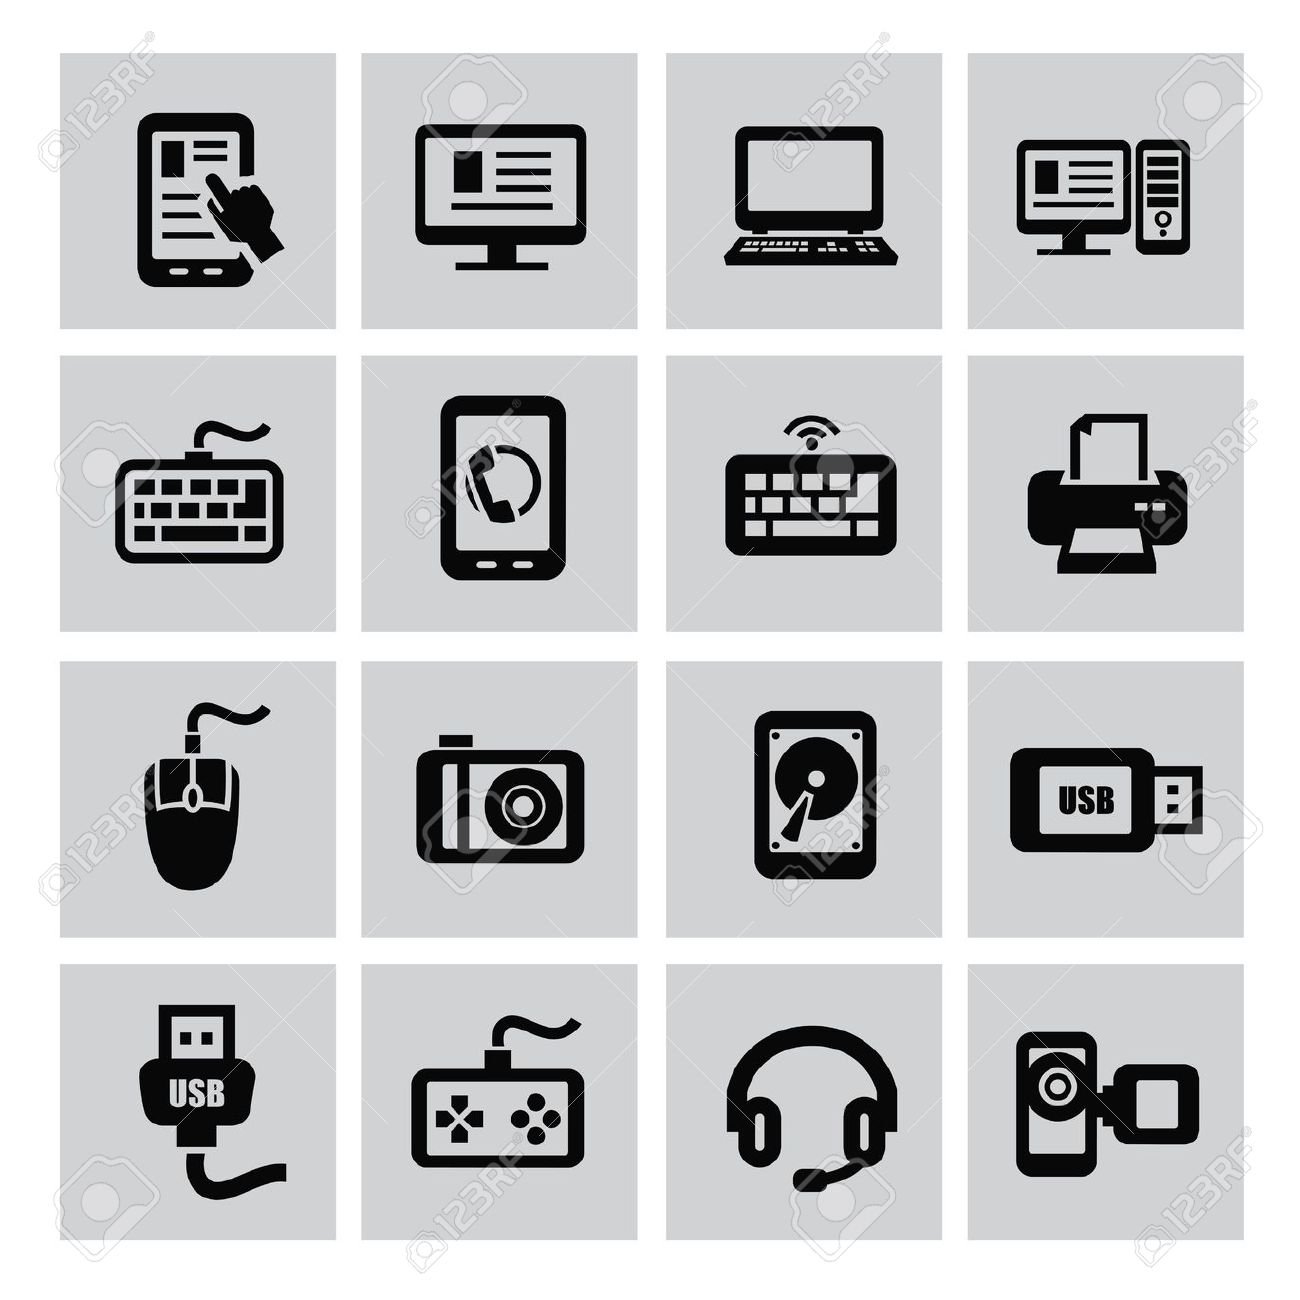 No electronics clipart vector free library Electronic devices clipart - ClipartFest vector free library